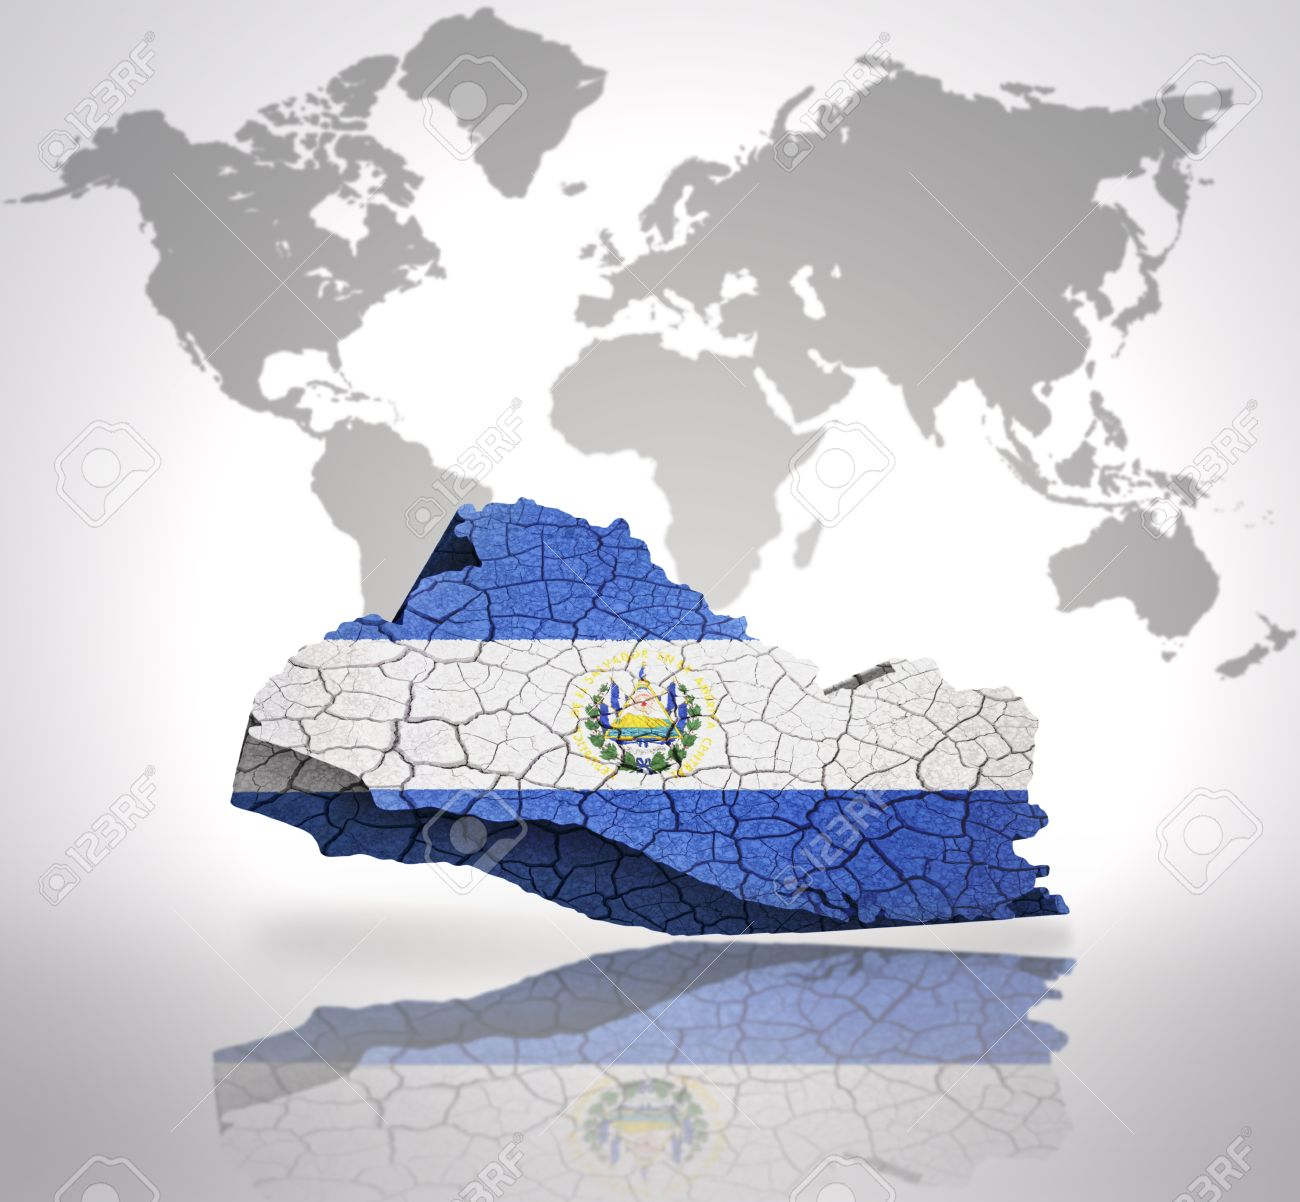 Map of el salvador with el salvador flag on a world map background map of el salvador with el salvador flag on a world map background stock photo gumiabroncs Image collections